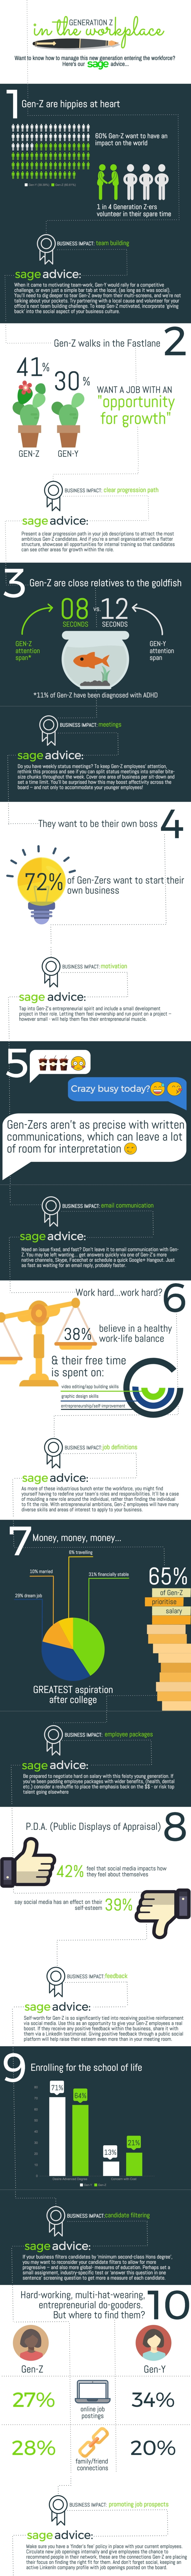 Optimized-Sage Gen-Z in the Workplace - Infographic design FINAL 29.06.2017 (1)